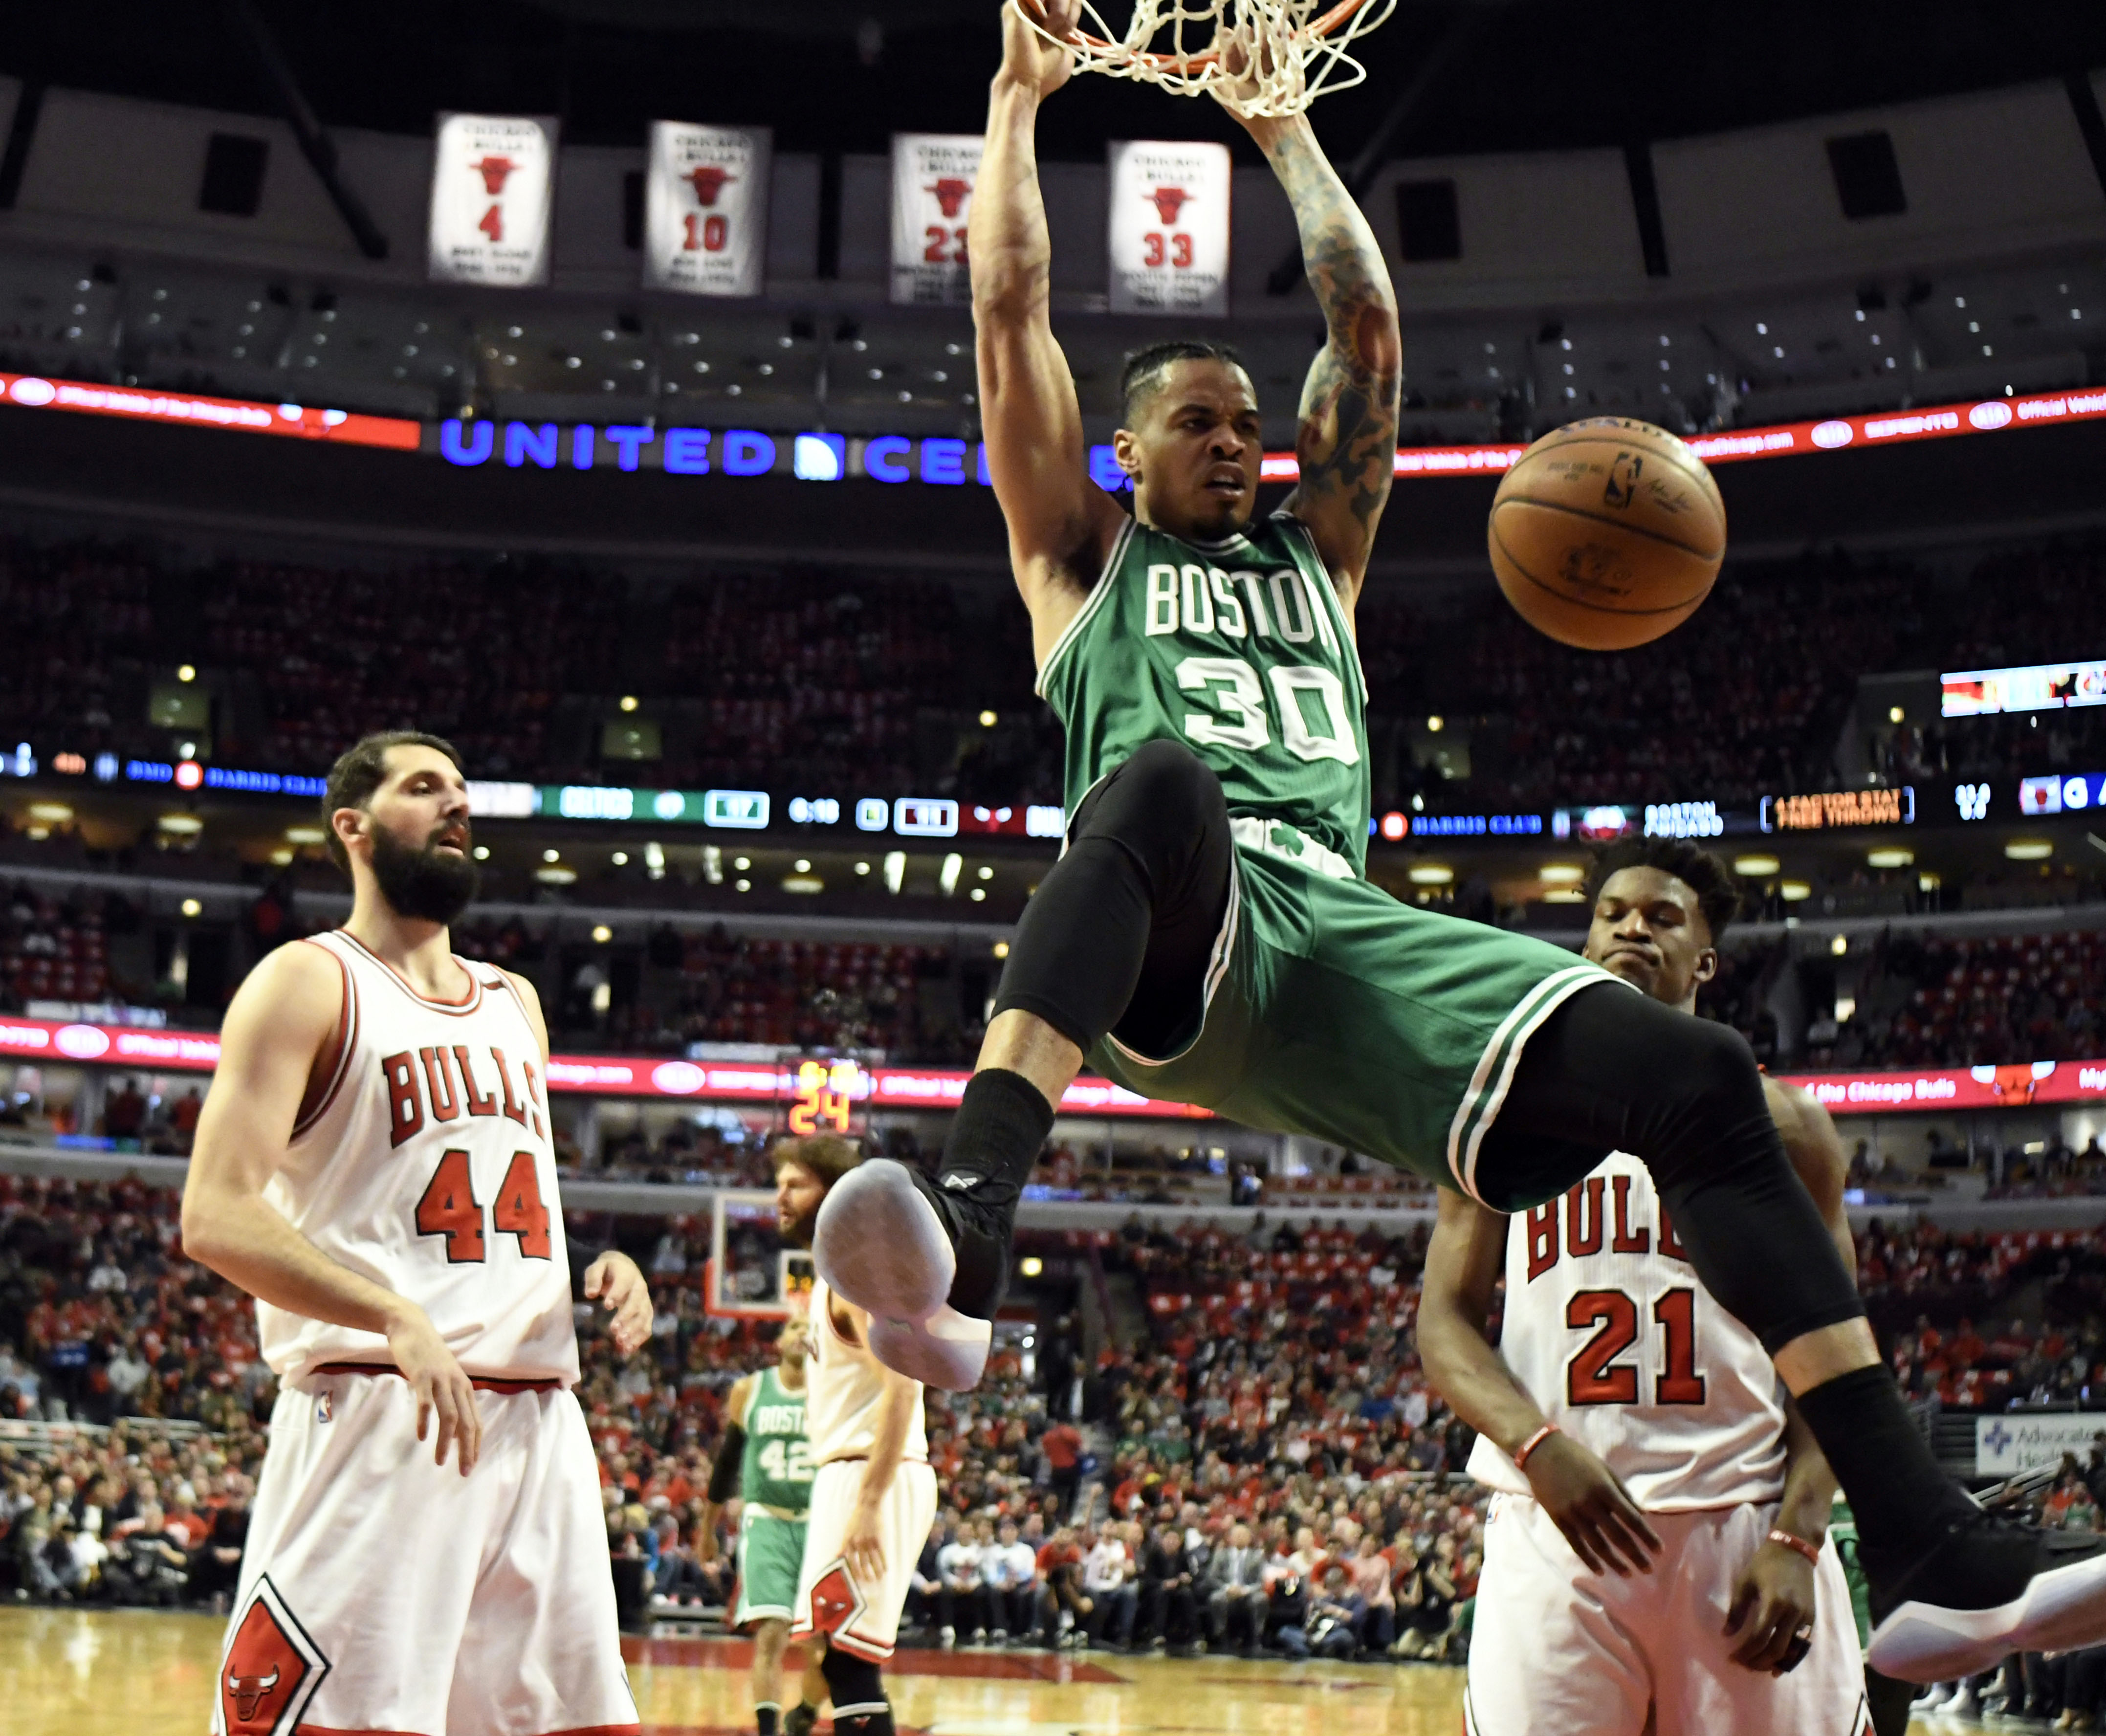 10034772-nba-playoffs-boston-celtics-at-chicago-bulls